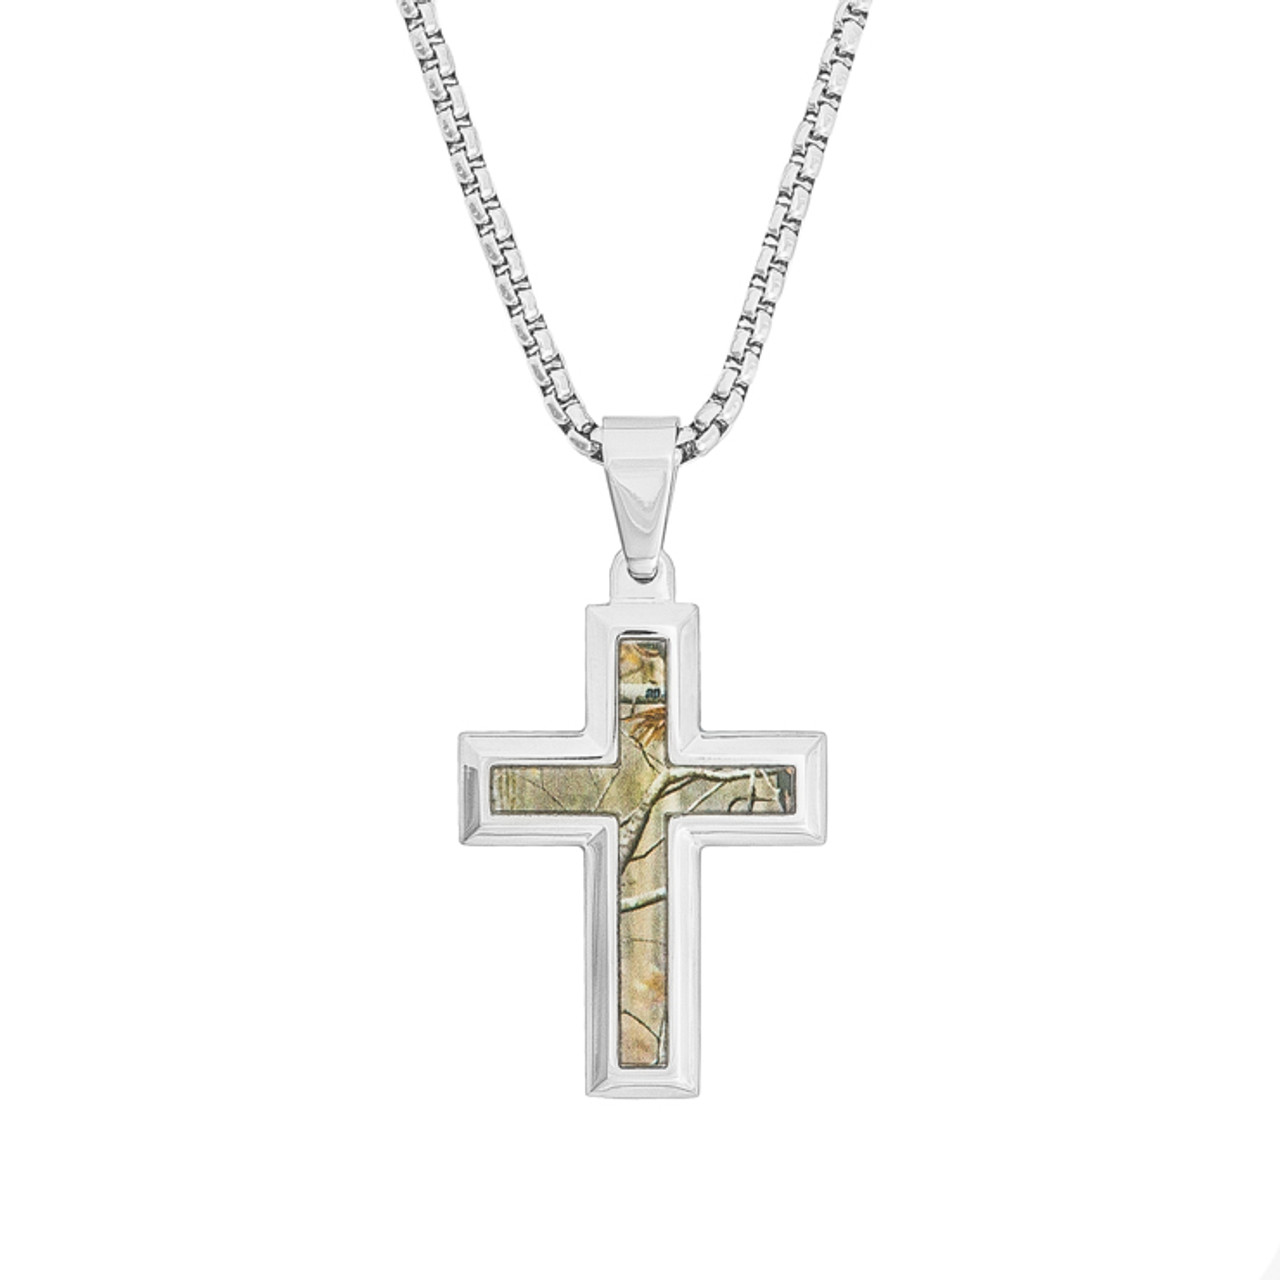 Stainless steel realtree camo cross necklace titanium buzz mens stainless steel realtree camo cross necklace mozeypictures Choice Image